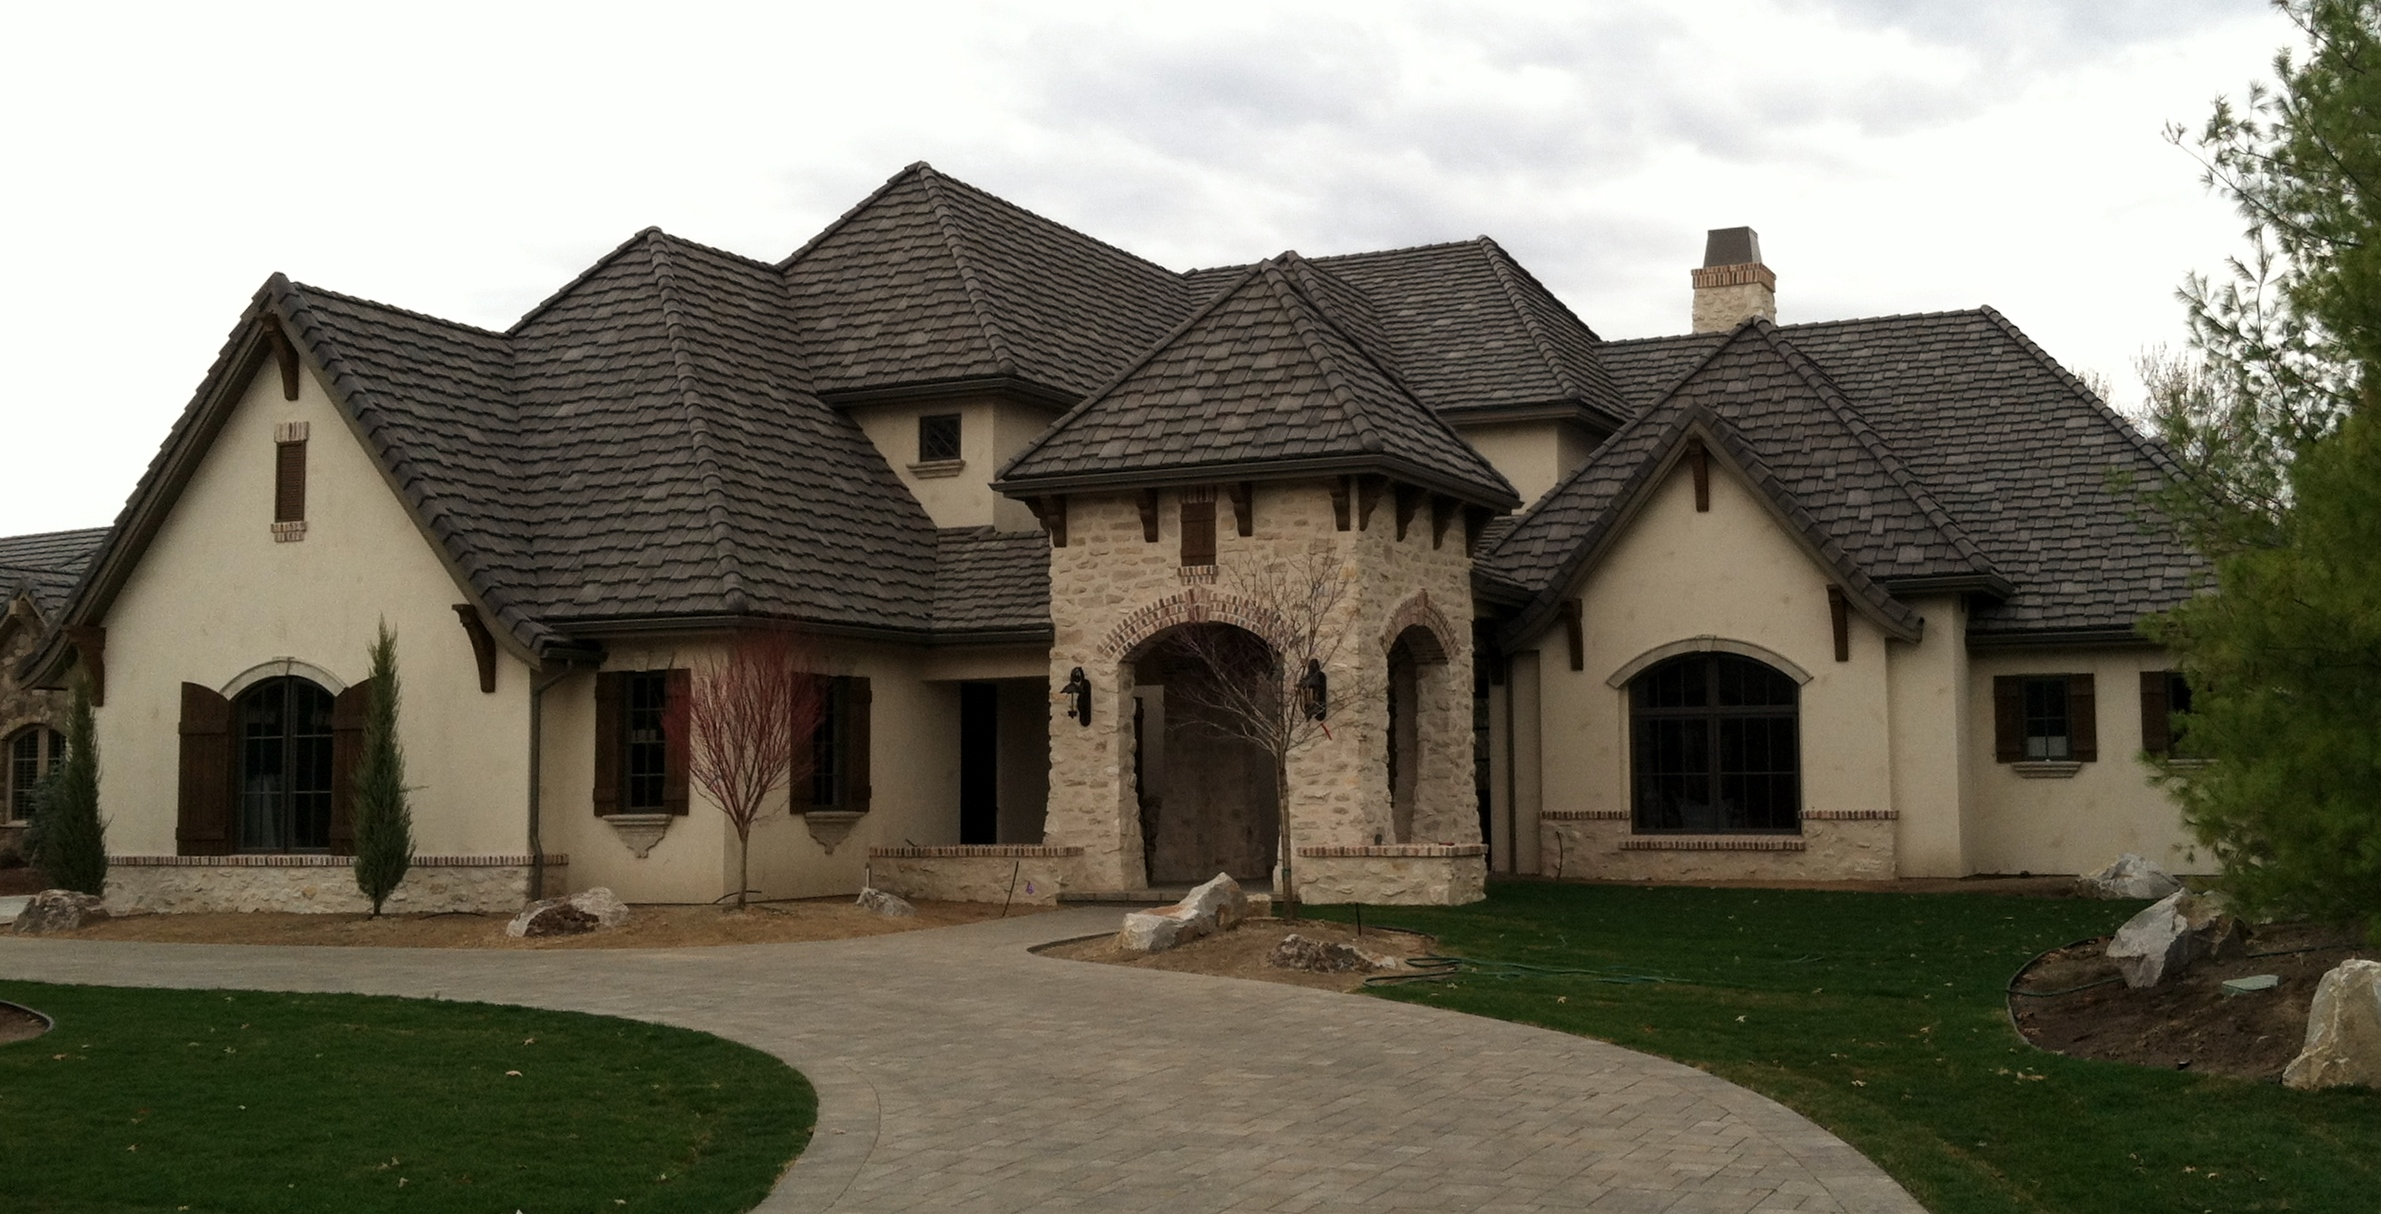 Robert pederesen signature homes eagle idaho for Old world home designs